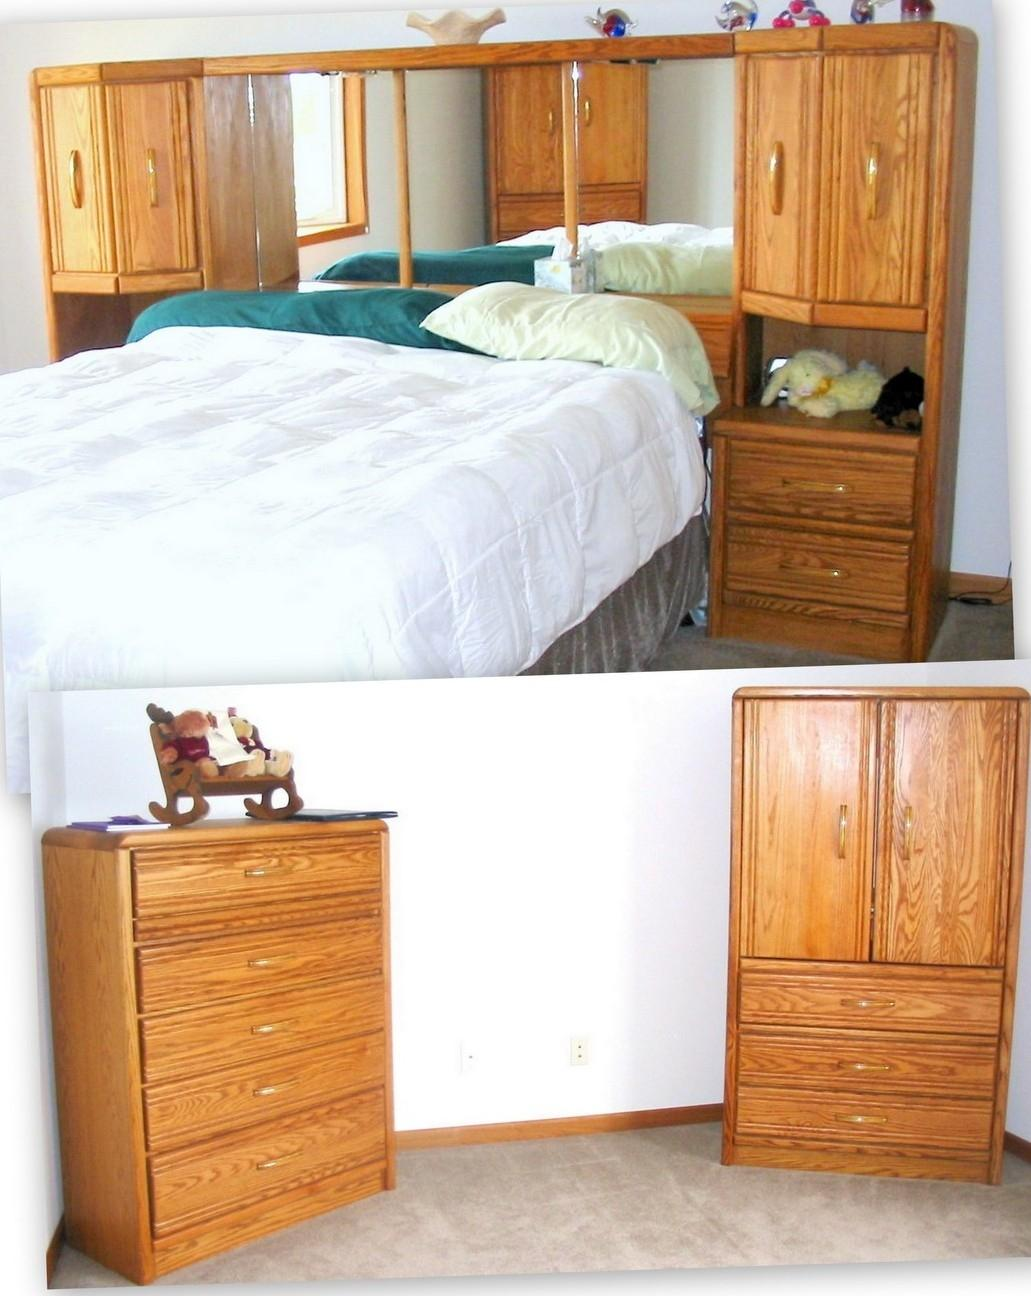 Find More Solid Wood Oak 3pc Queen Bedroom Set 2 Tower Bed Tv Armoire Dresser For Sale At Up